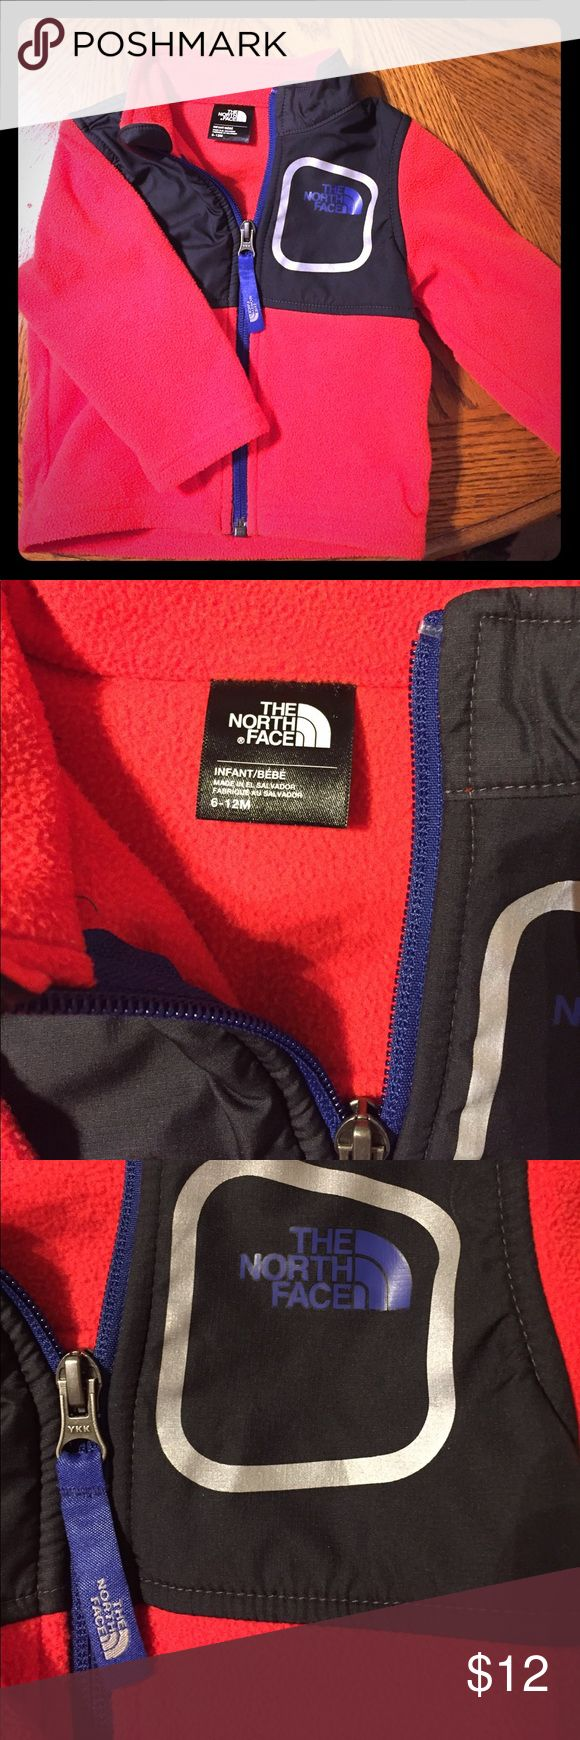 The north face fleece jacket RED 6-12 mos This is a red north face fleece jacket for babies. 6-12 months . Authentic ! Only worn a few times. Great condition. The North Face Jackets & Coats